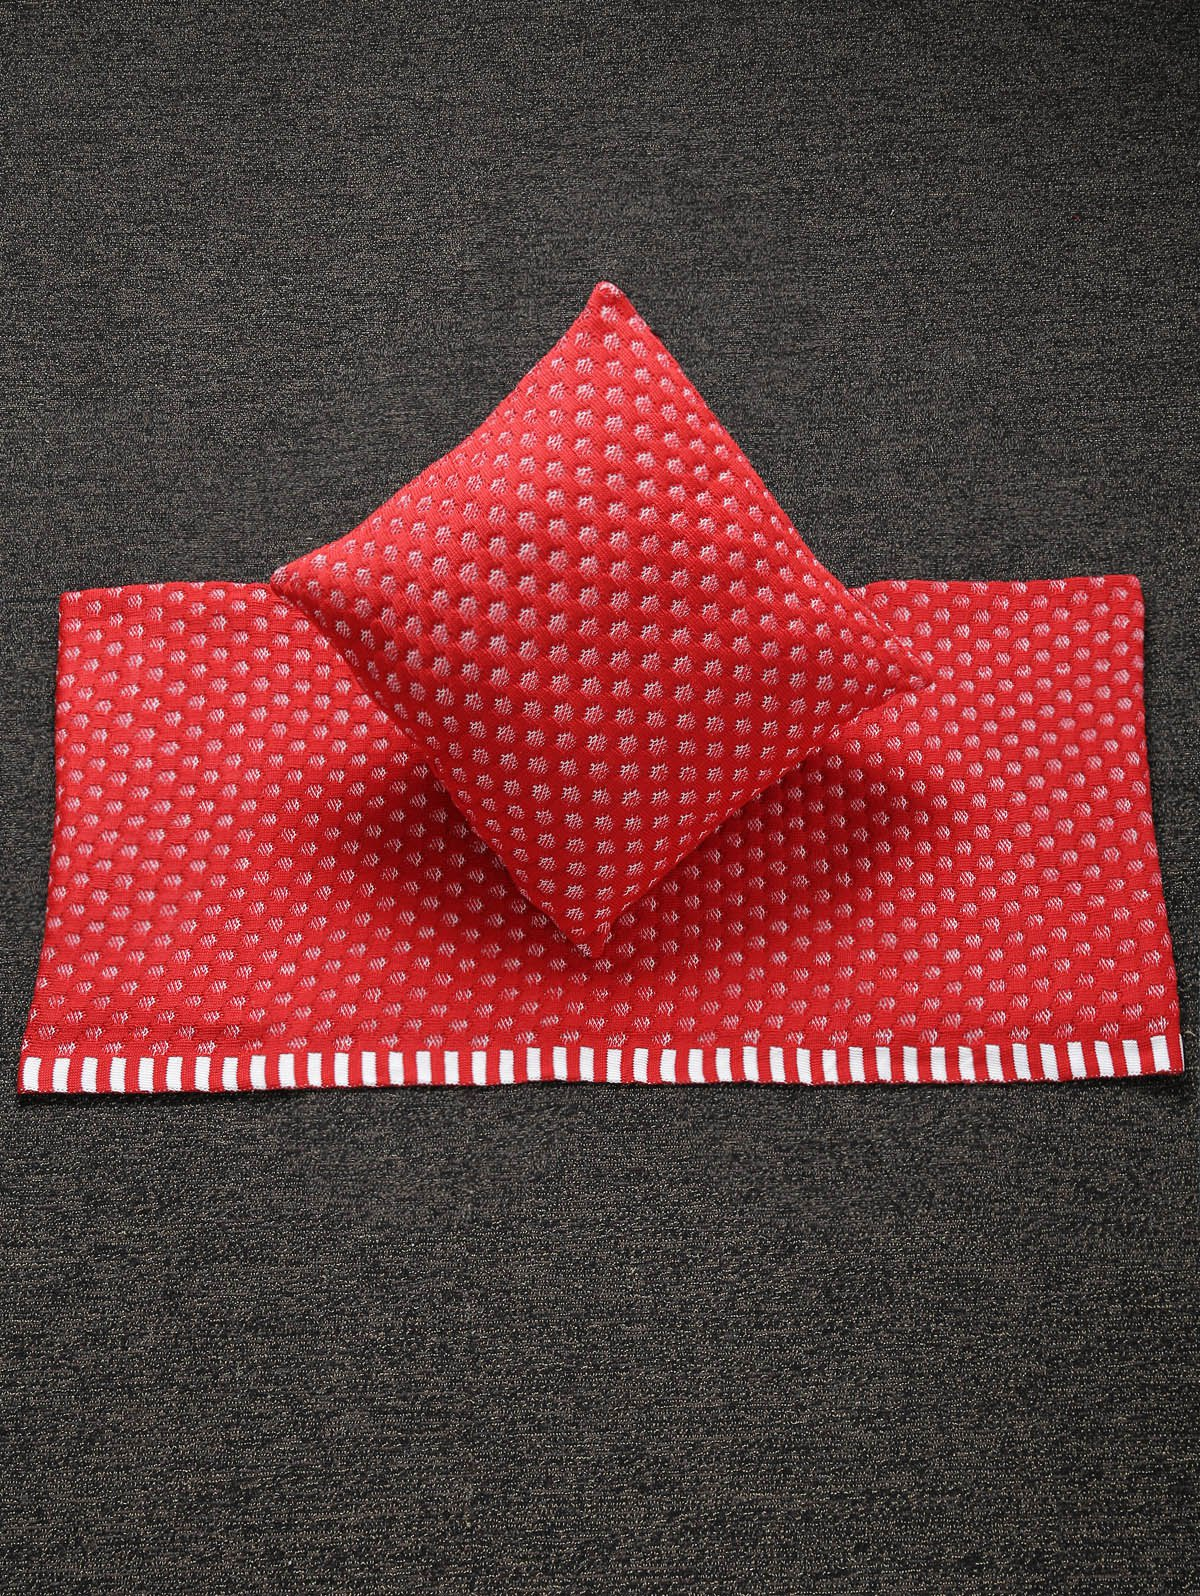 Stylish Home Decor Warm Comfortable Christmas Red Mesh Knitted Pillow Case and Blanket - RED